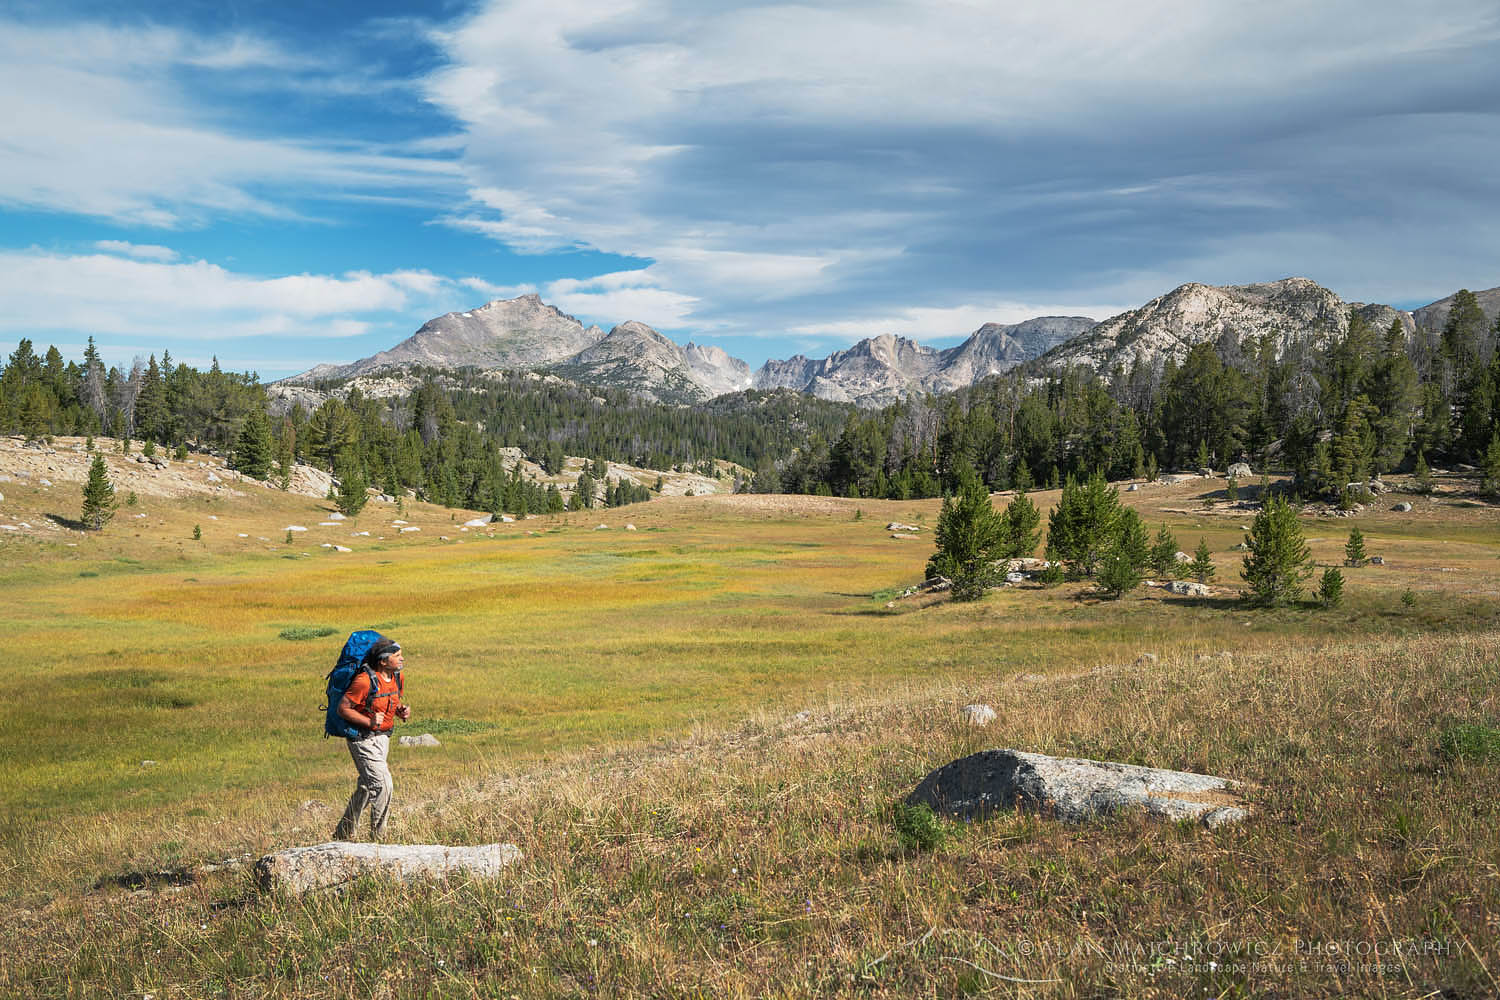 Backpacker Wind River Range, Wyoming Backpacking Photography Tips